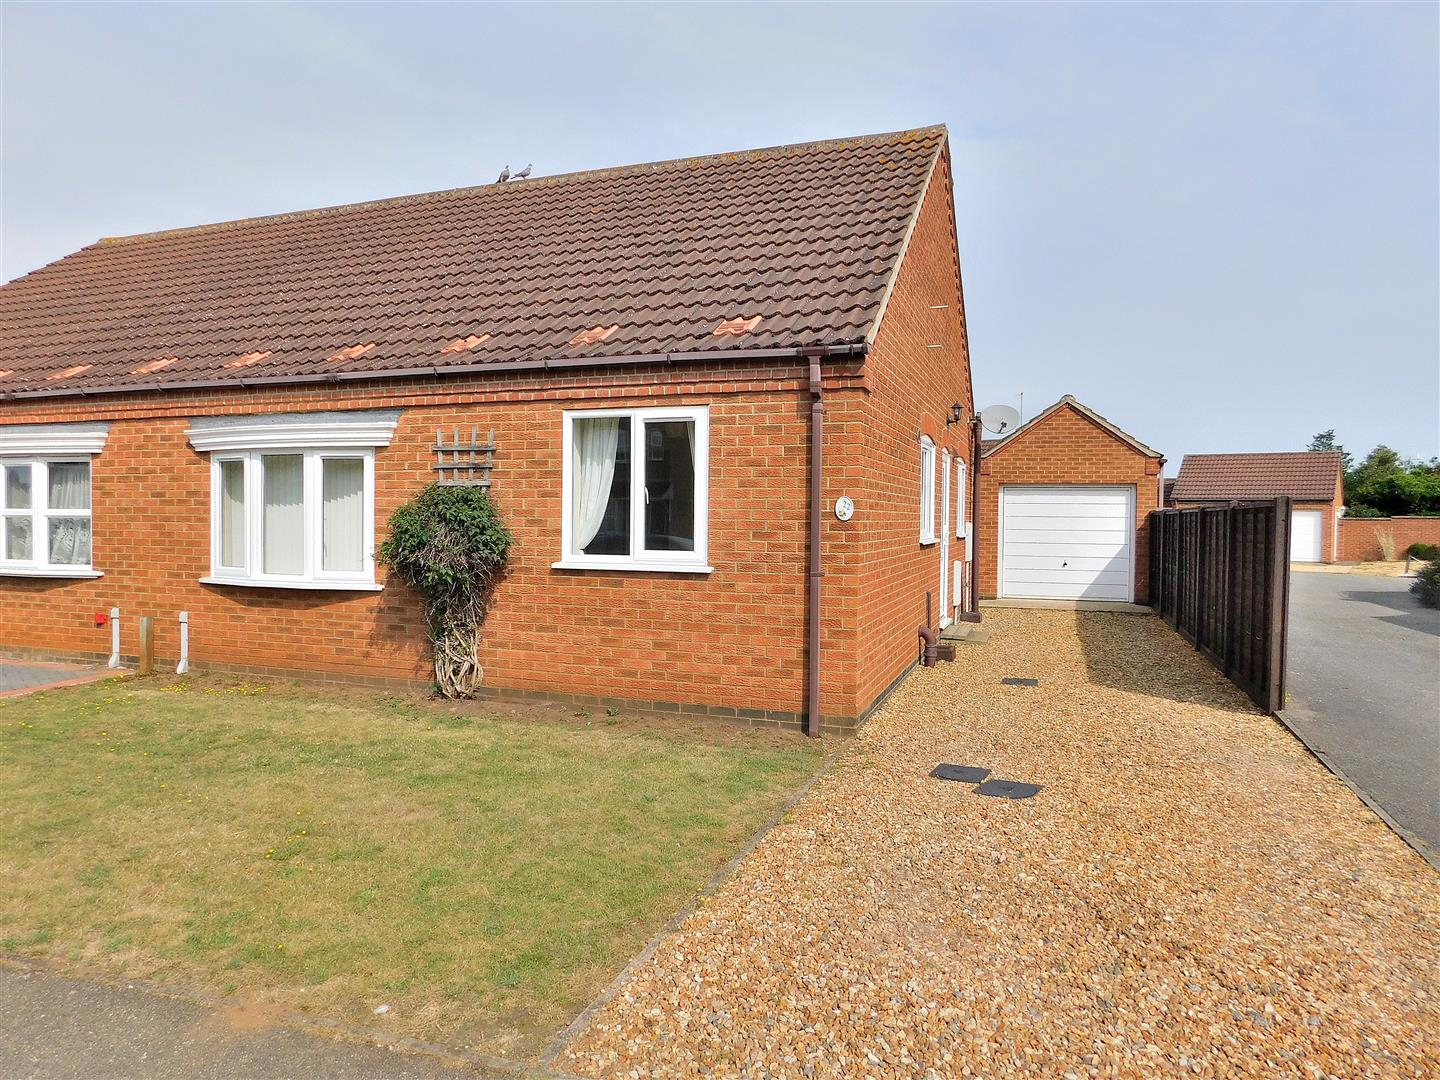 2 bed semi-detached bungalow for sale in Philip Nurse Road, King's Lynn - Property Image 1